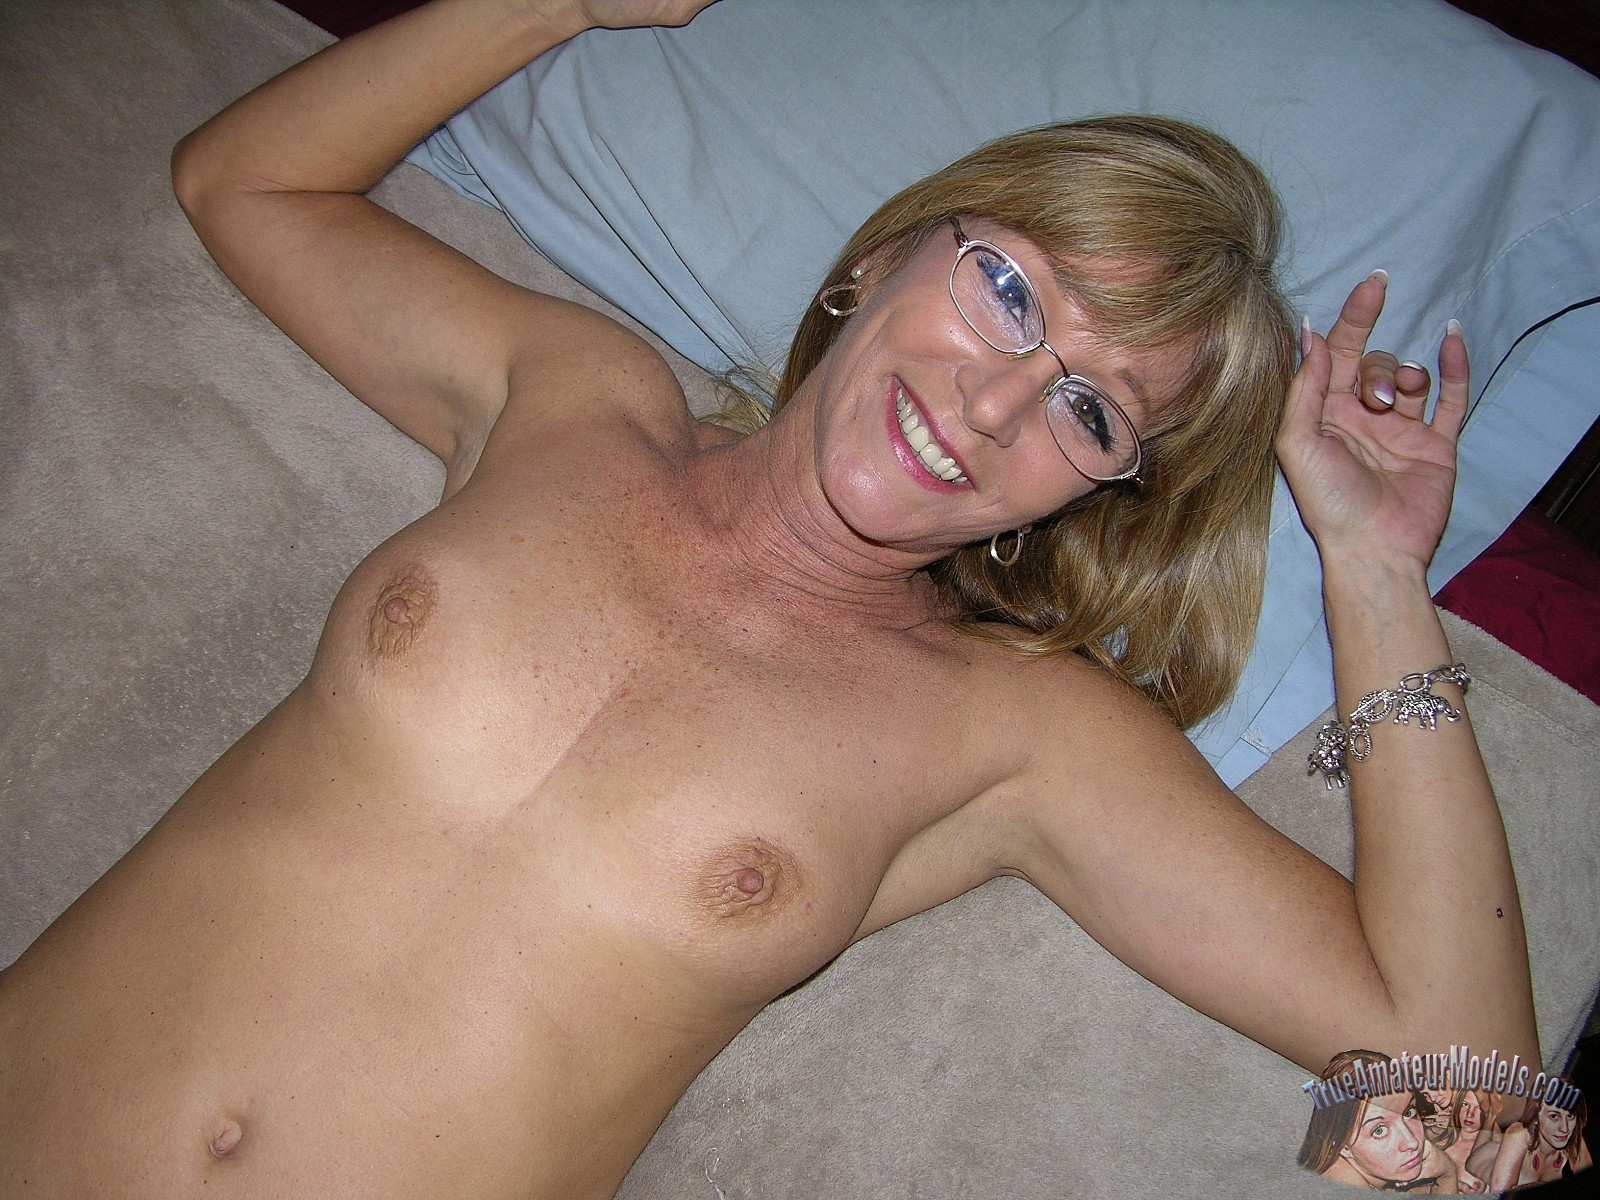 Amateur milf model